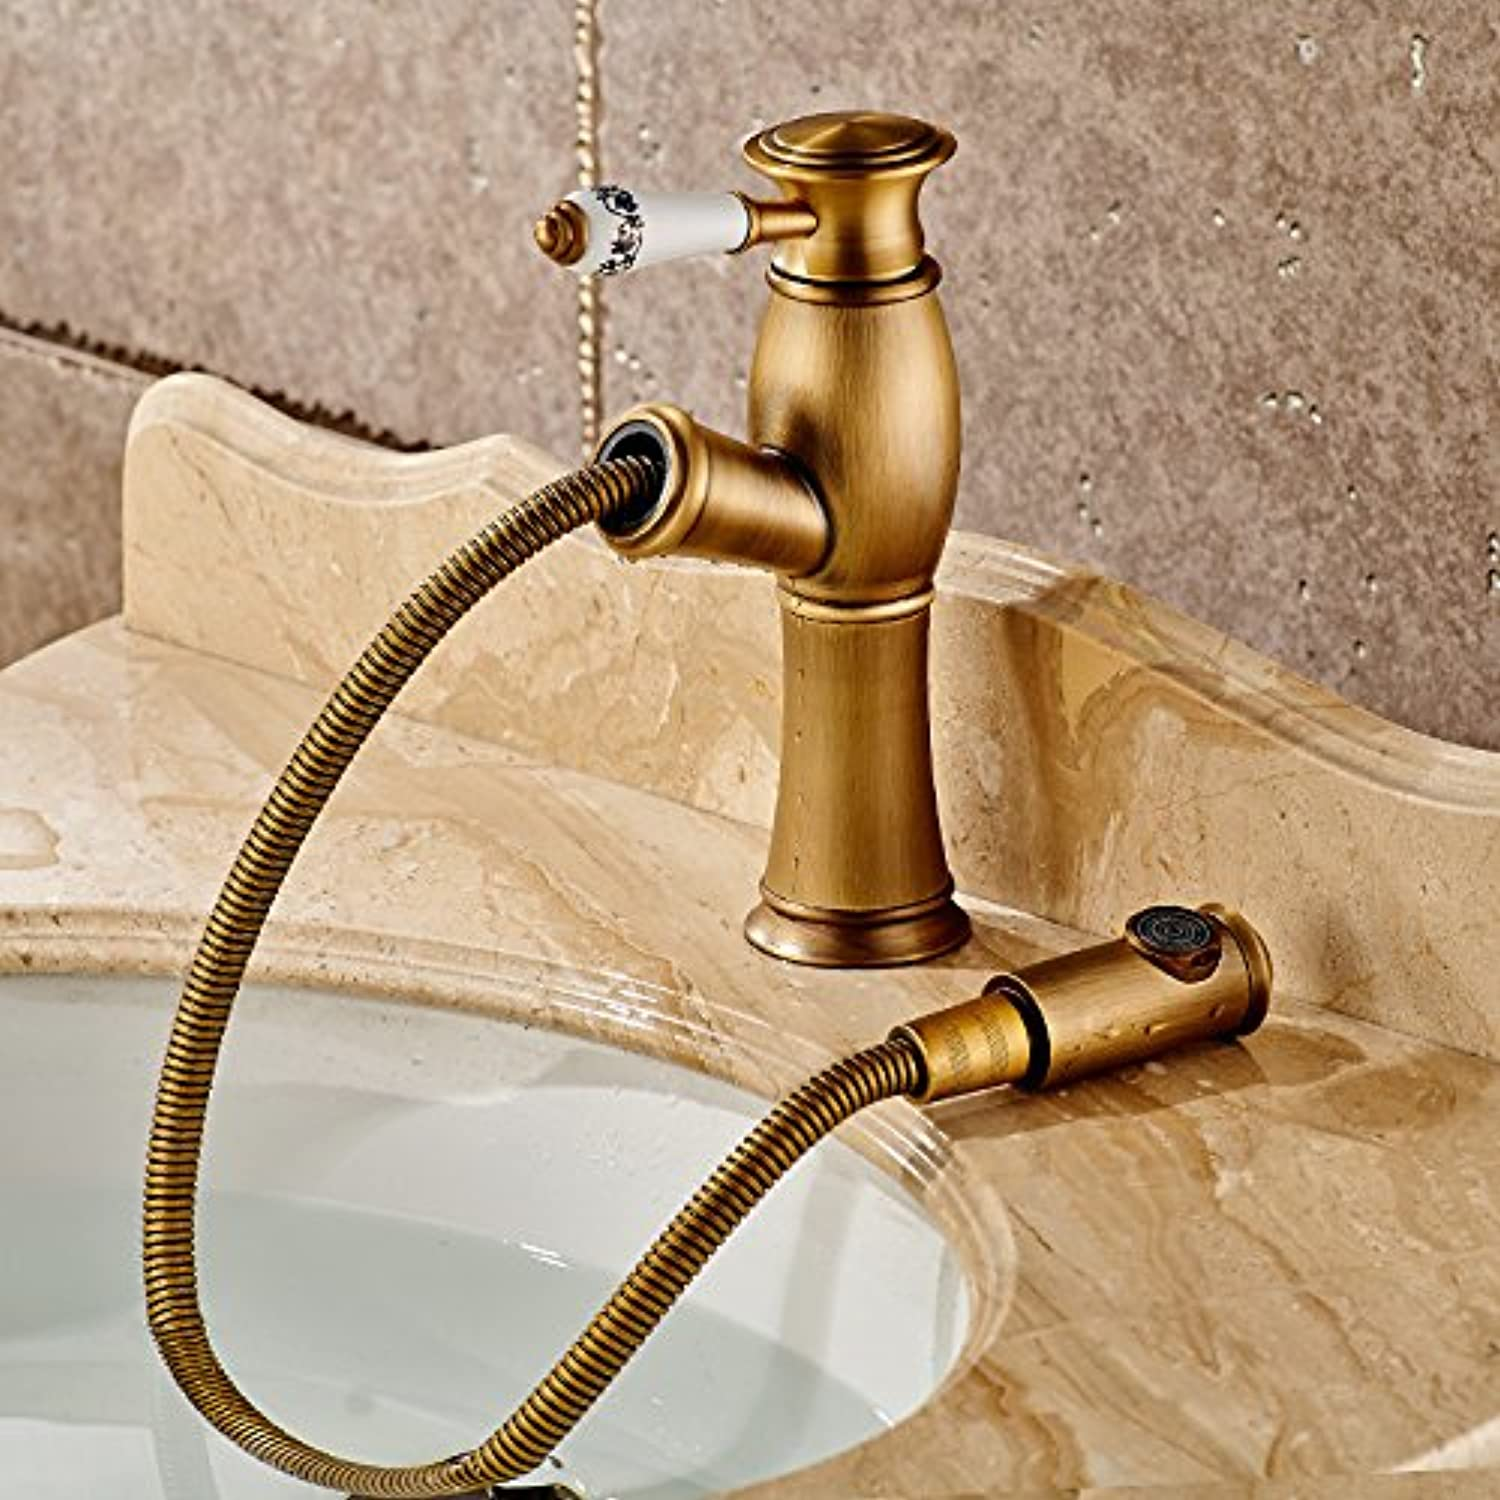 Hlluya Professional Sink Mixer Tap Kitchen Faucet Antique basin mixer bathroom full copper pull hot and cold water faucets antique telescopic lowered basin, antique pull-down Faucet